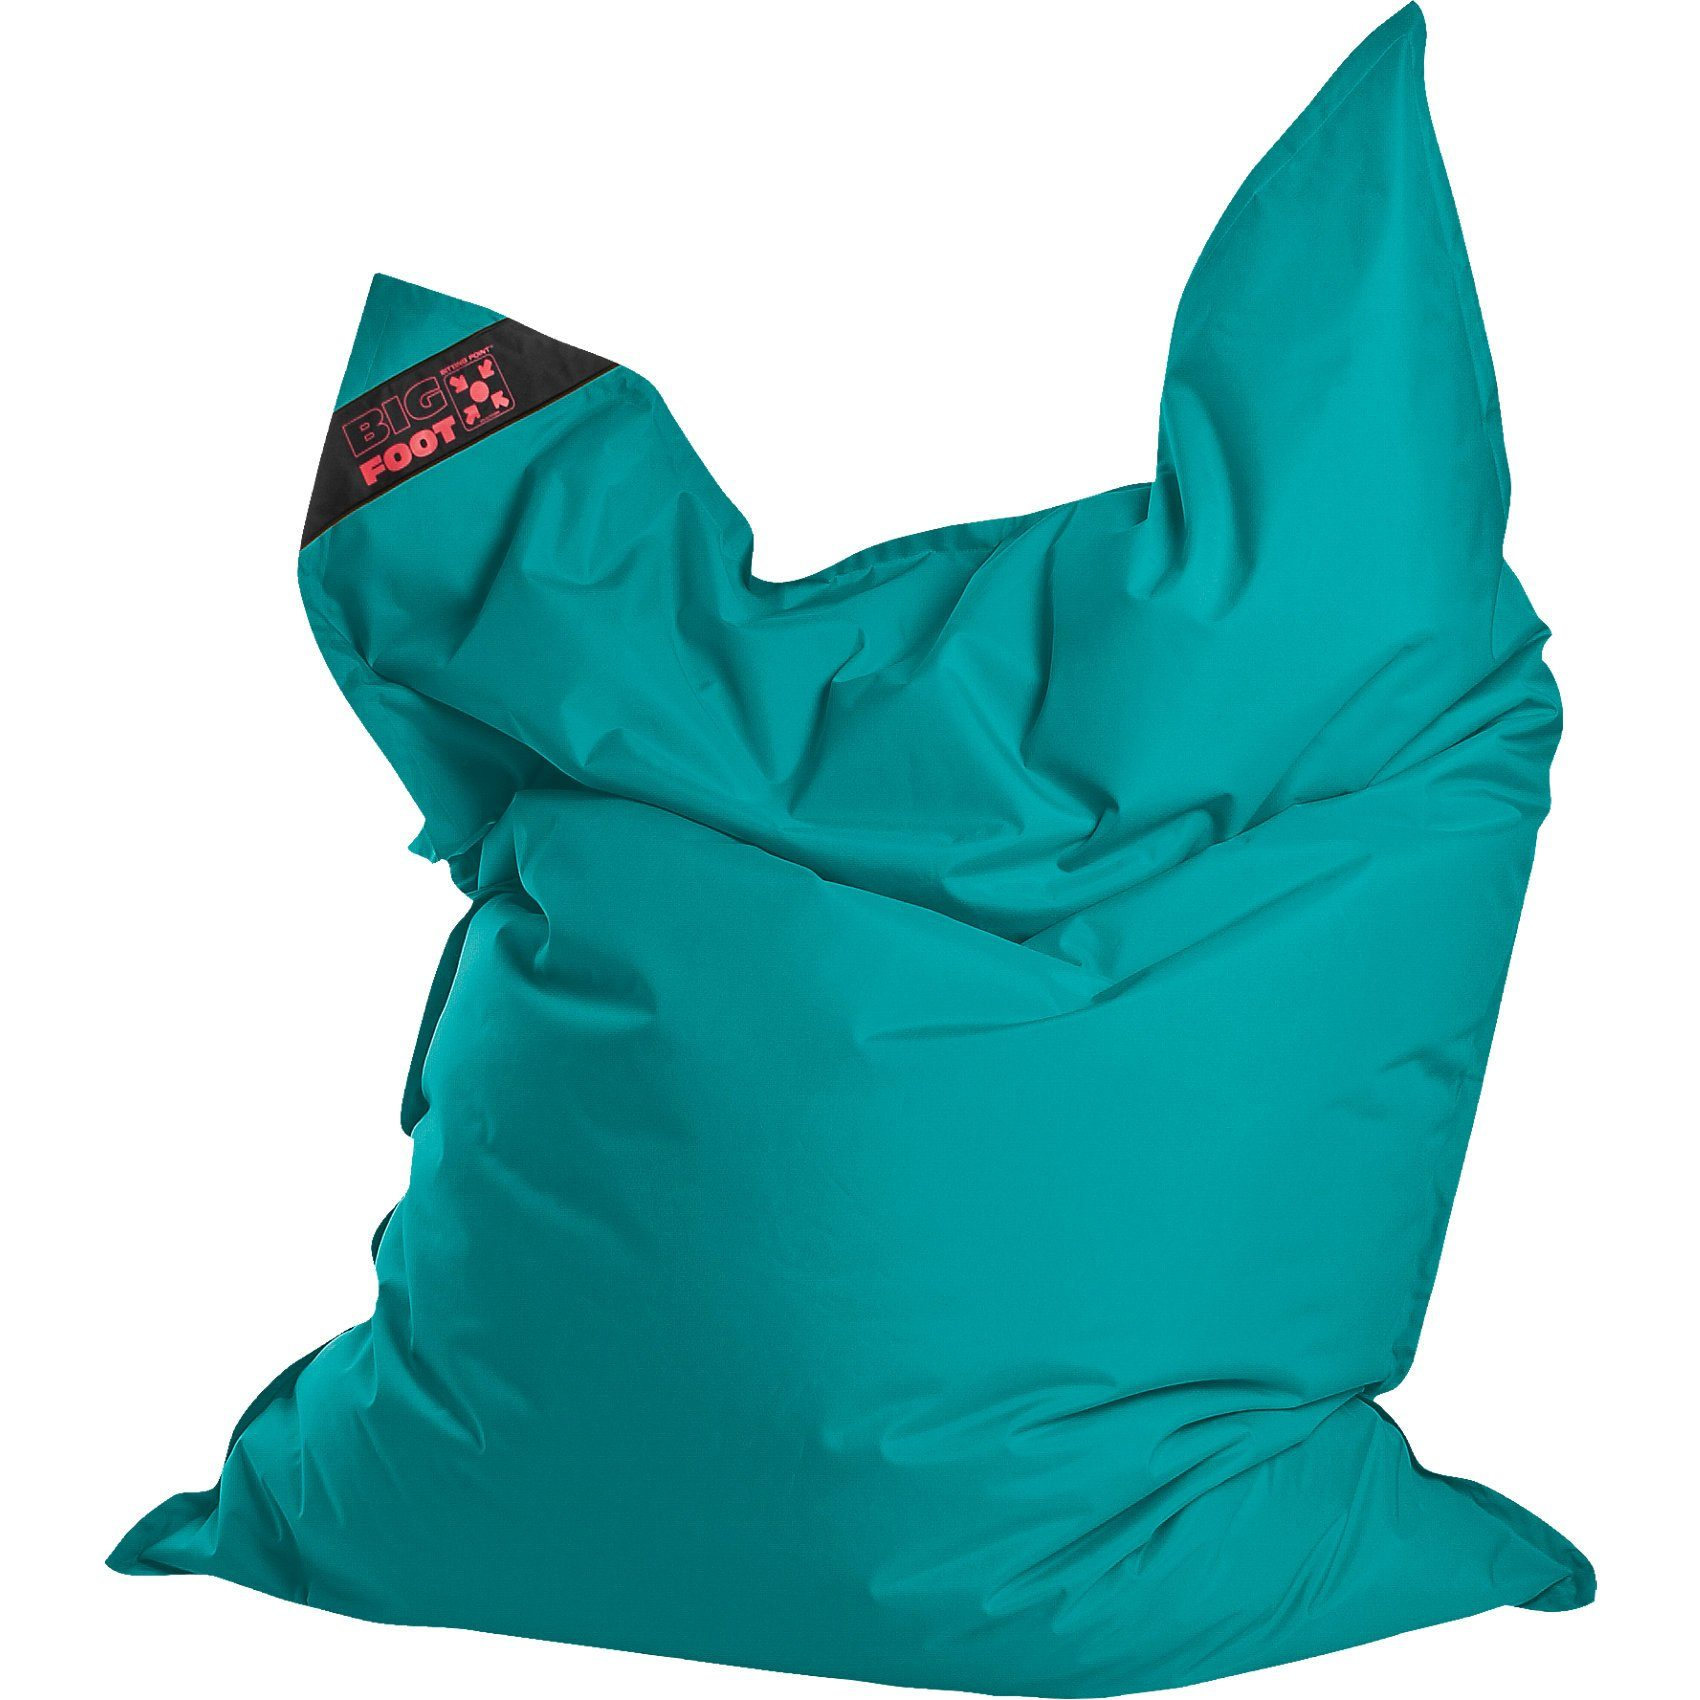 Sitting Point Sitzsack BIGFOOT SCUBA, 130 x 170 cm, petrol